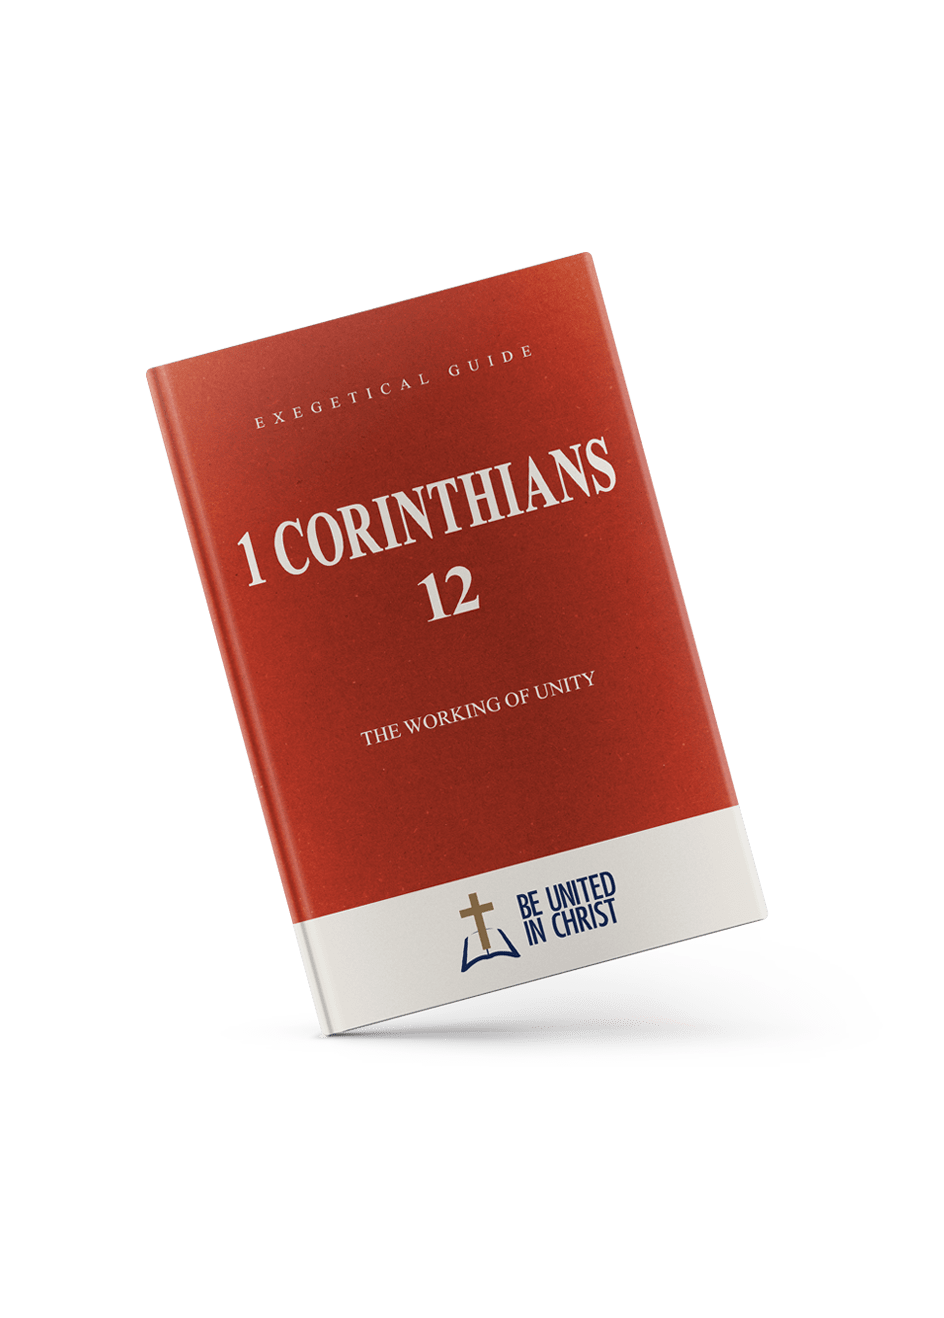 1 Corinthians 12 Book Cover angle view